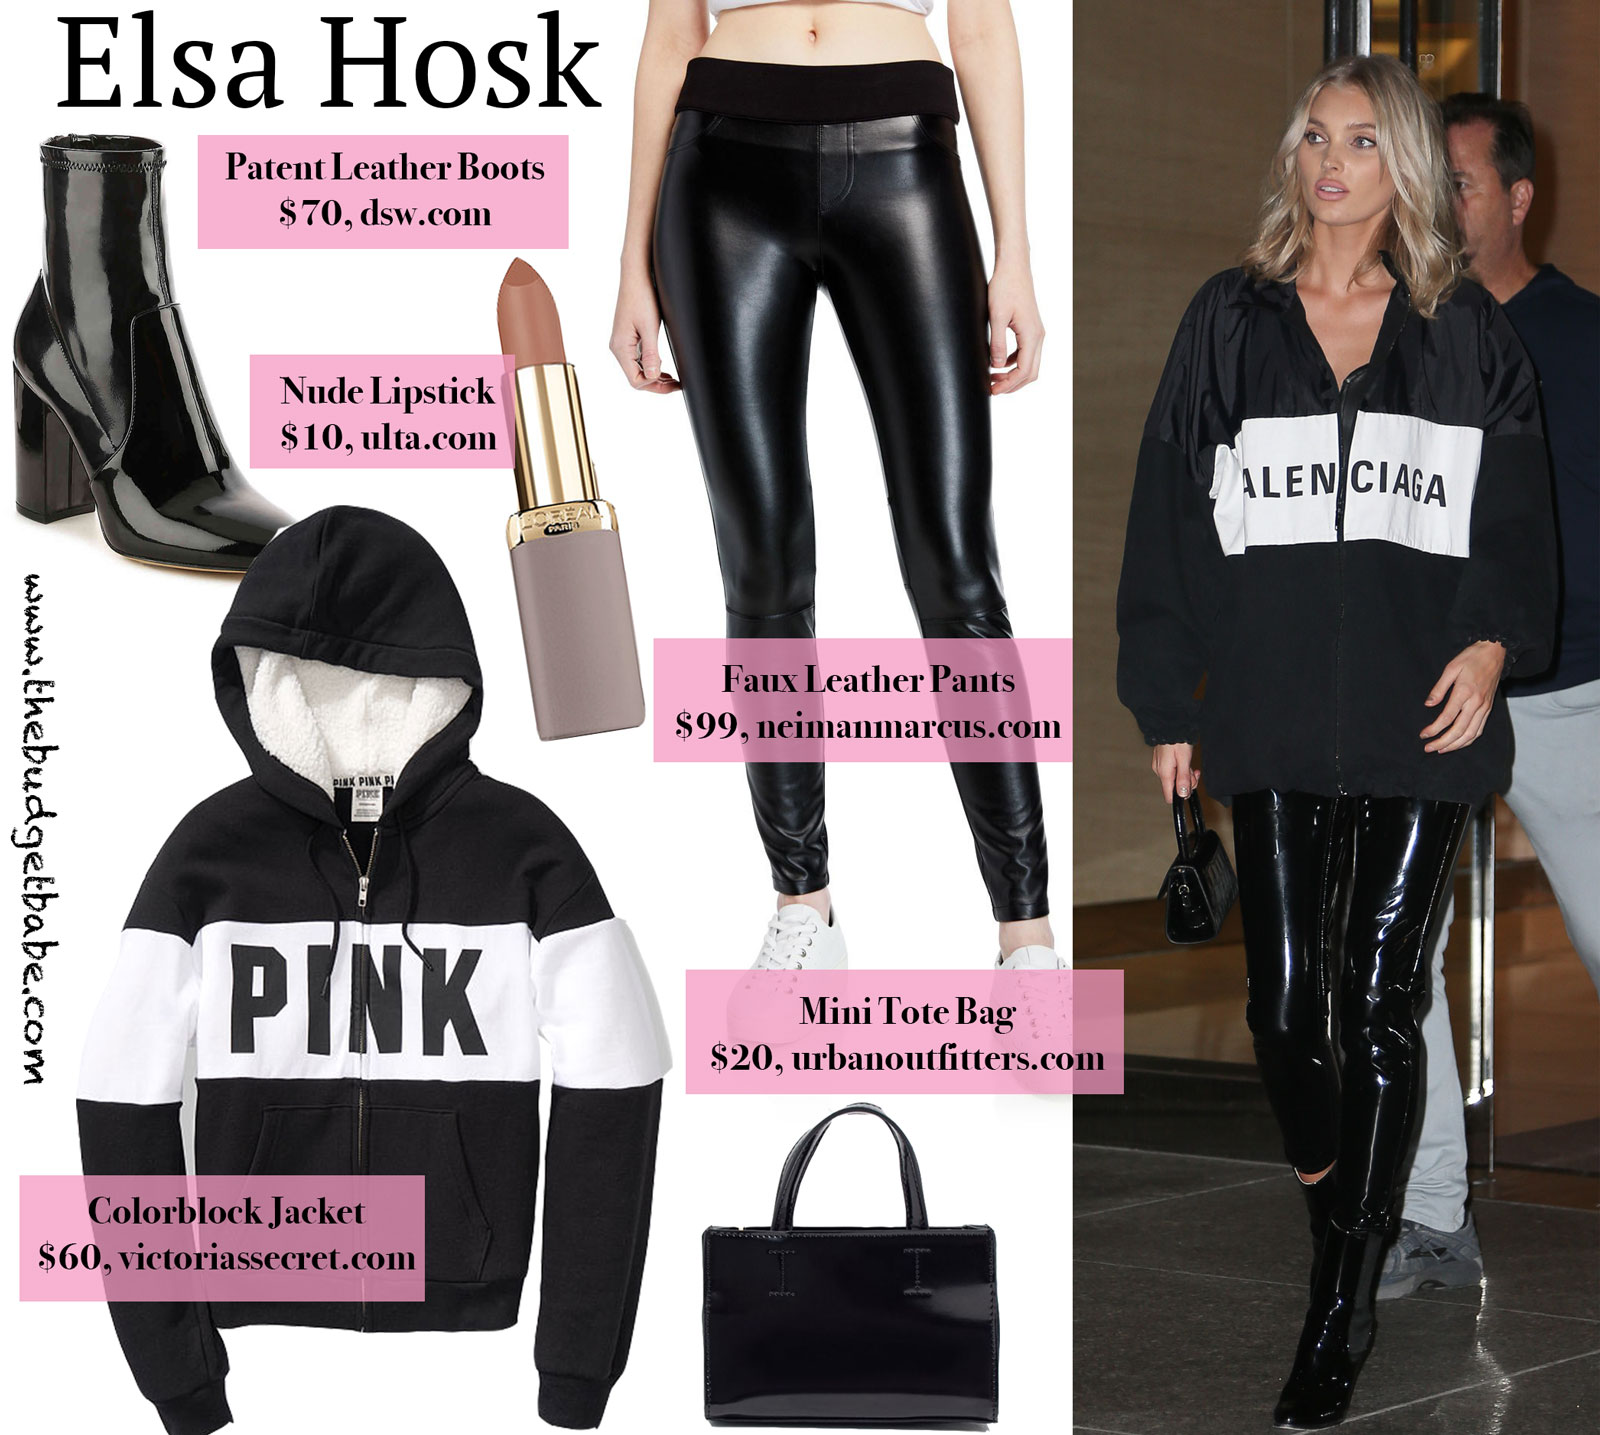 Elsa Hosk Balenciaga Jacket Look for Less